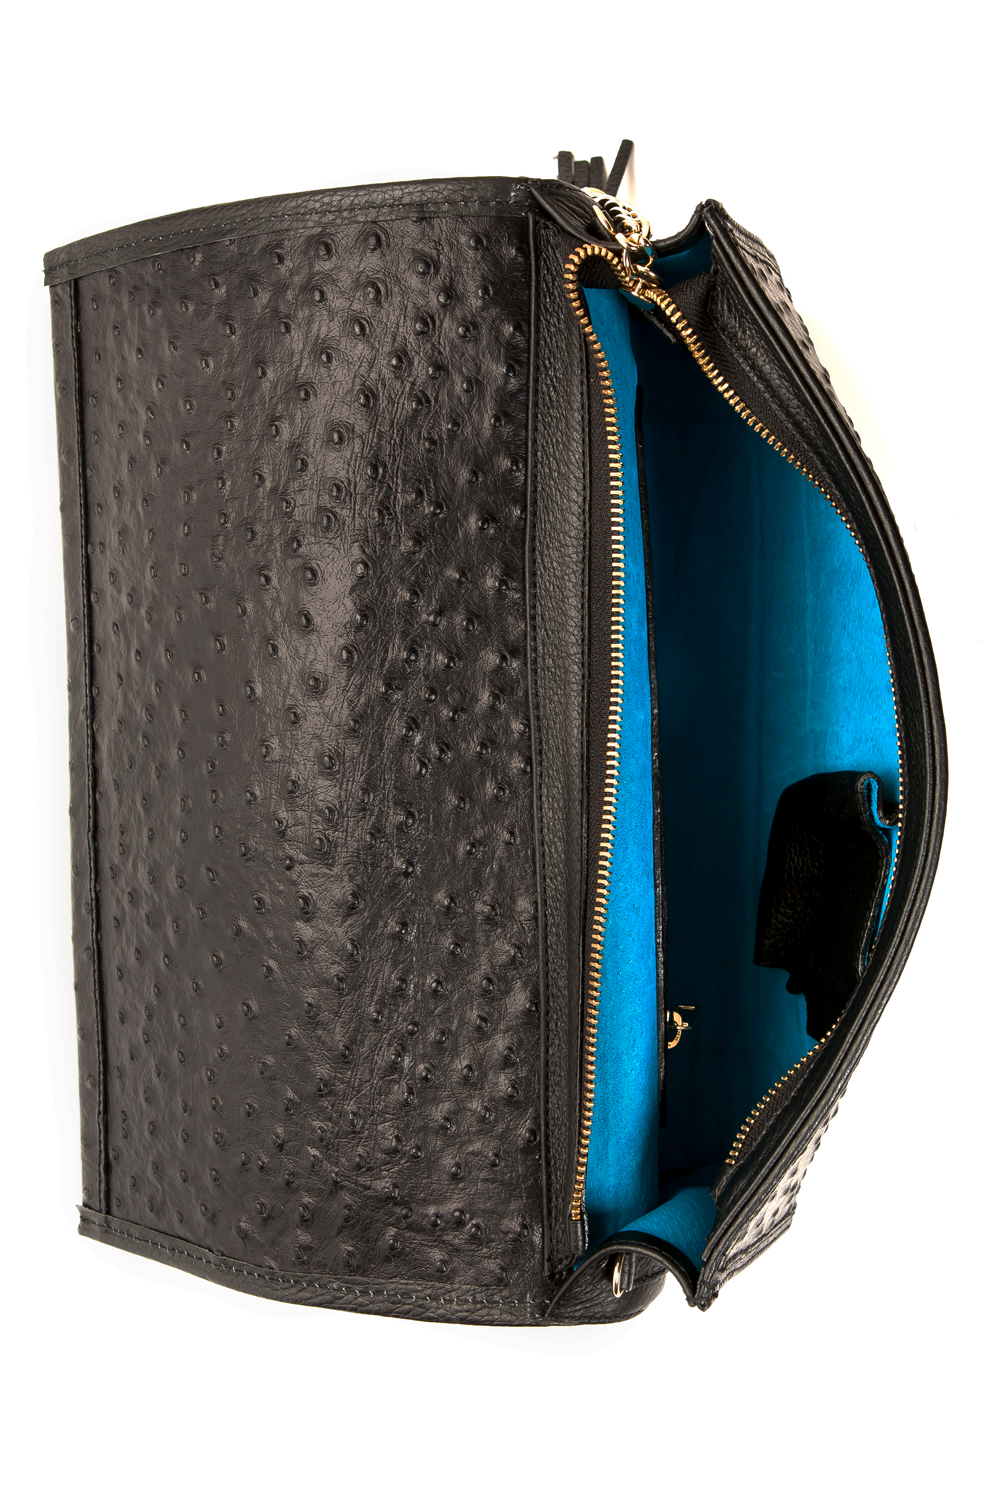 'Cara' Envelope Clutch in Black Ostrich Print Leather | Mel Boteri | Model Interior View